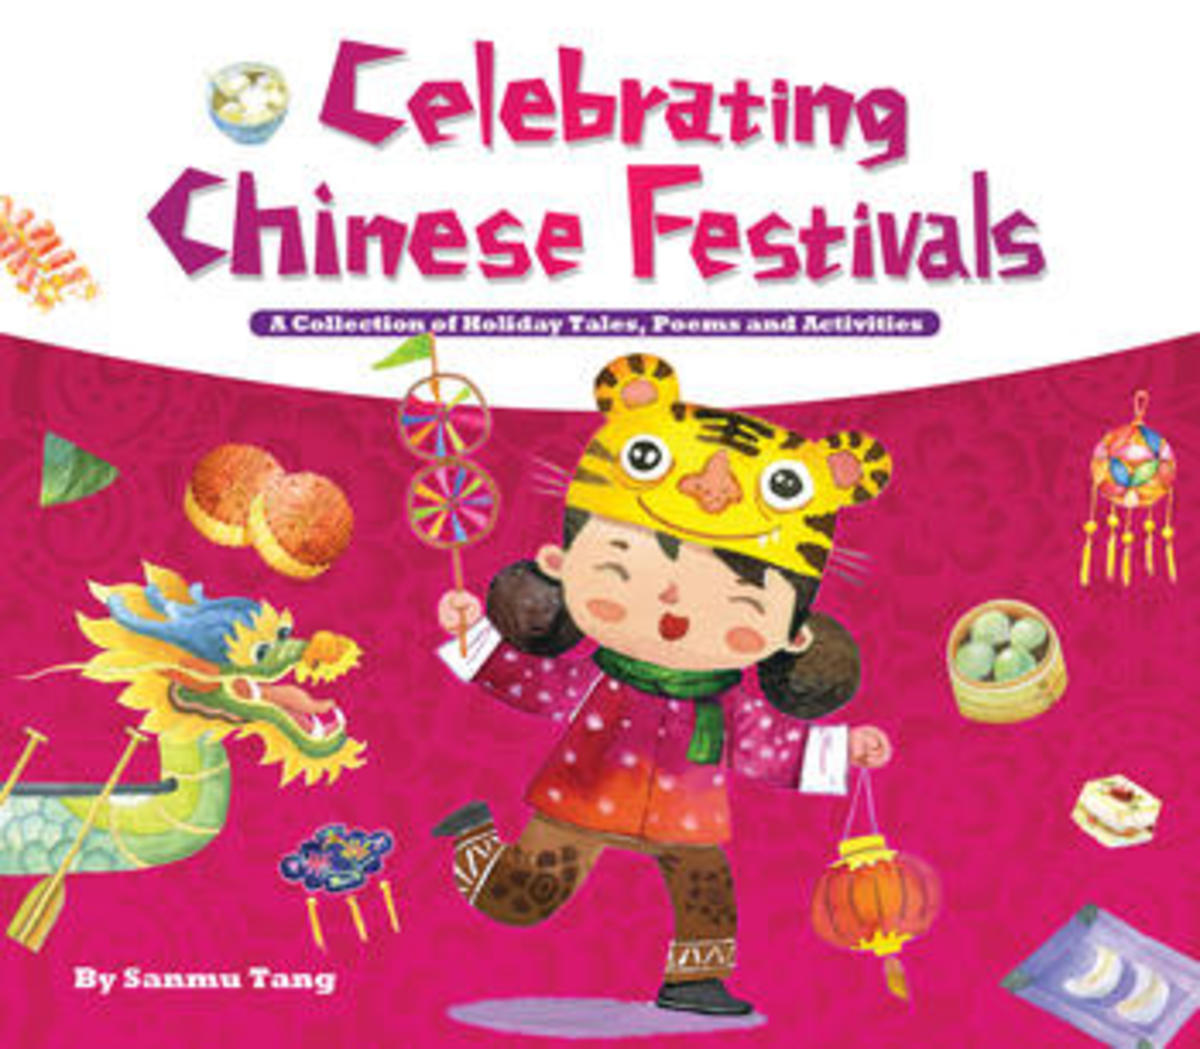 Celebrating Chinese Festivals:  Best Books for Kids About China:  Families with Children from China